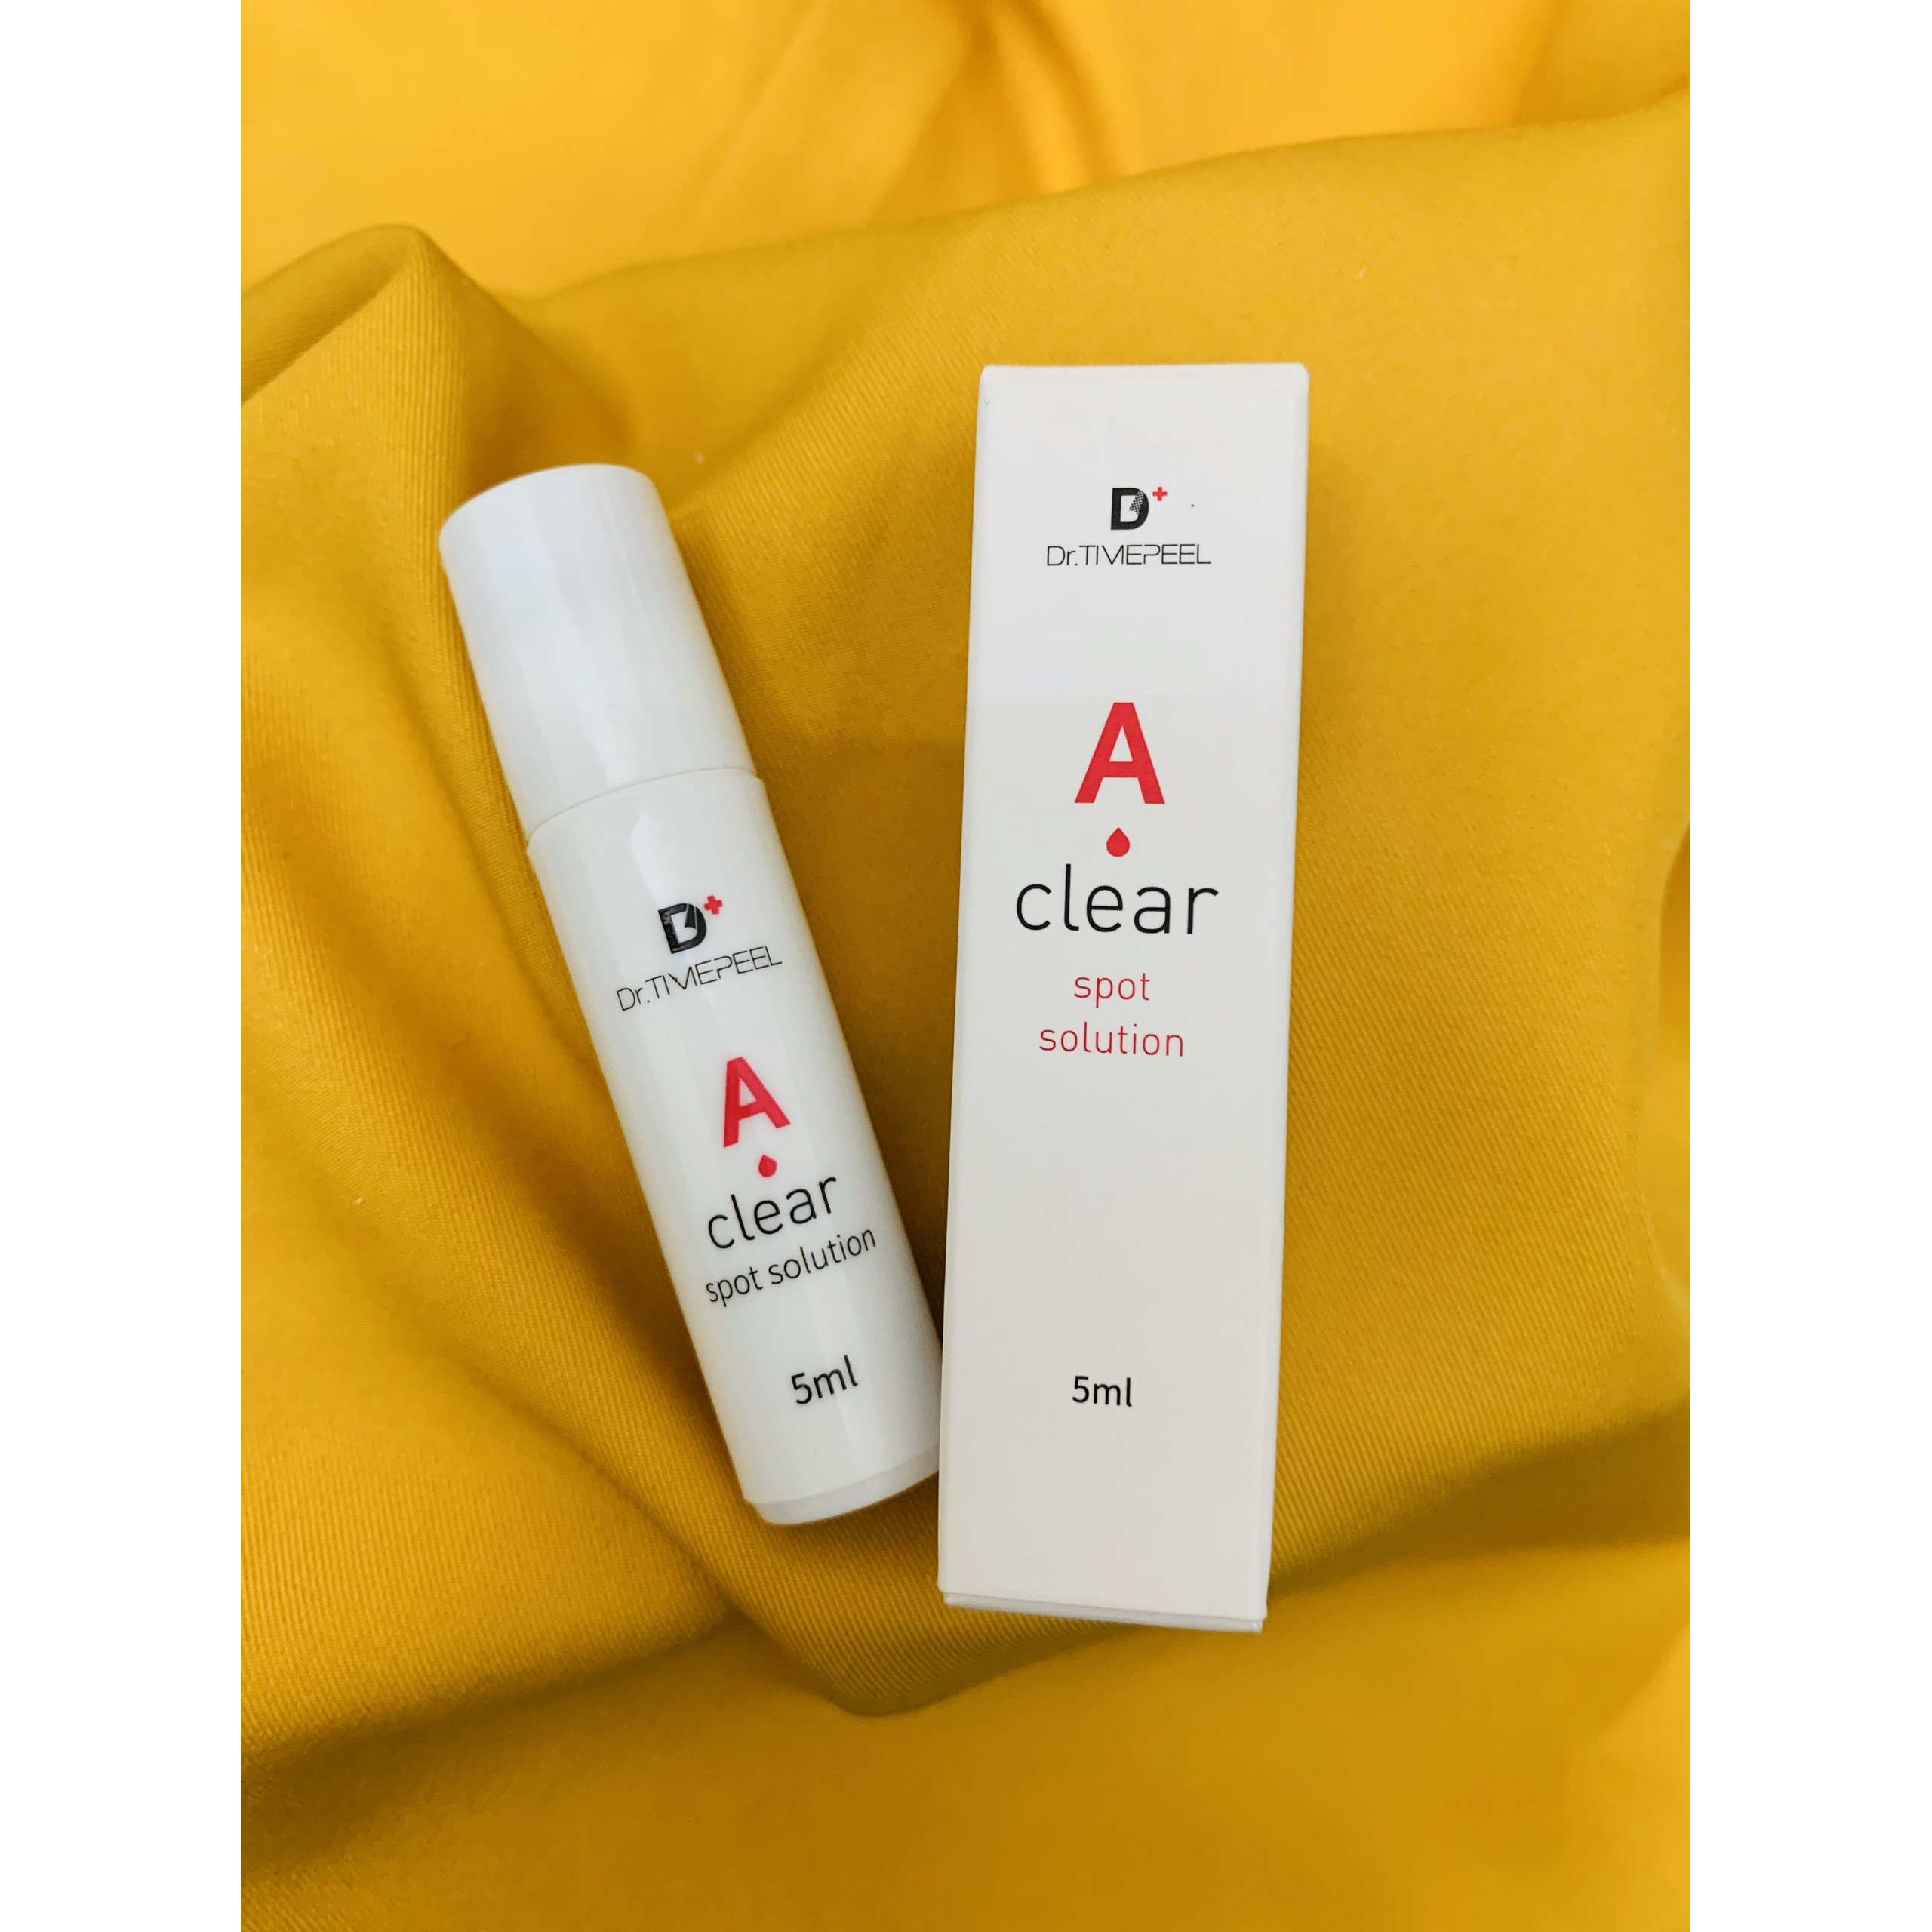 Dr.Timepeel A Clear Spot Solution DR TIMEPEEL A CLEAR SPOT SOLUTION THANH LĂN MỤN DR SKIN HÀN QUỖC